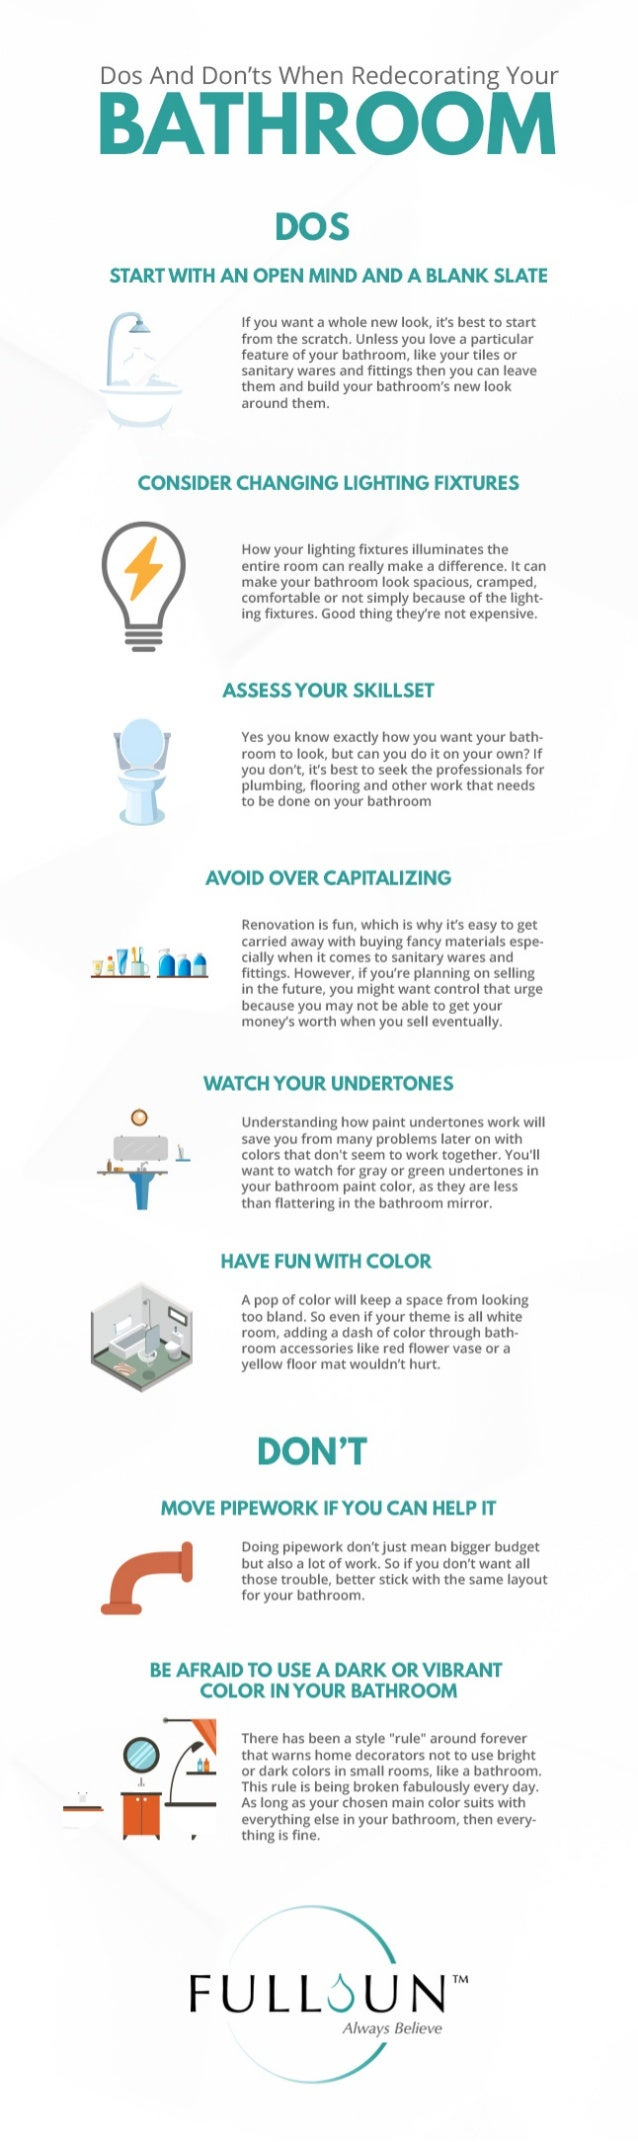 Dos And Don'ts When Redecorating Your Bathroom